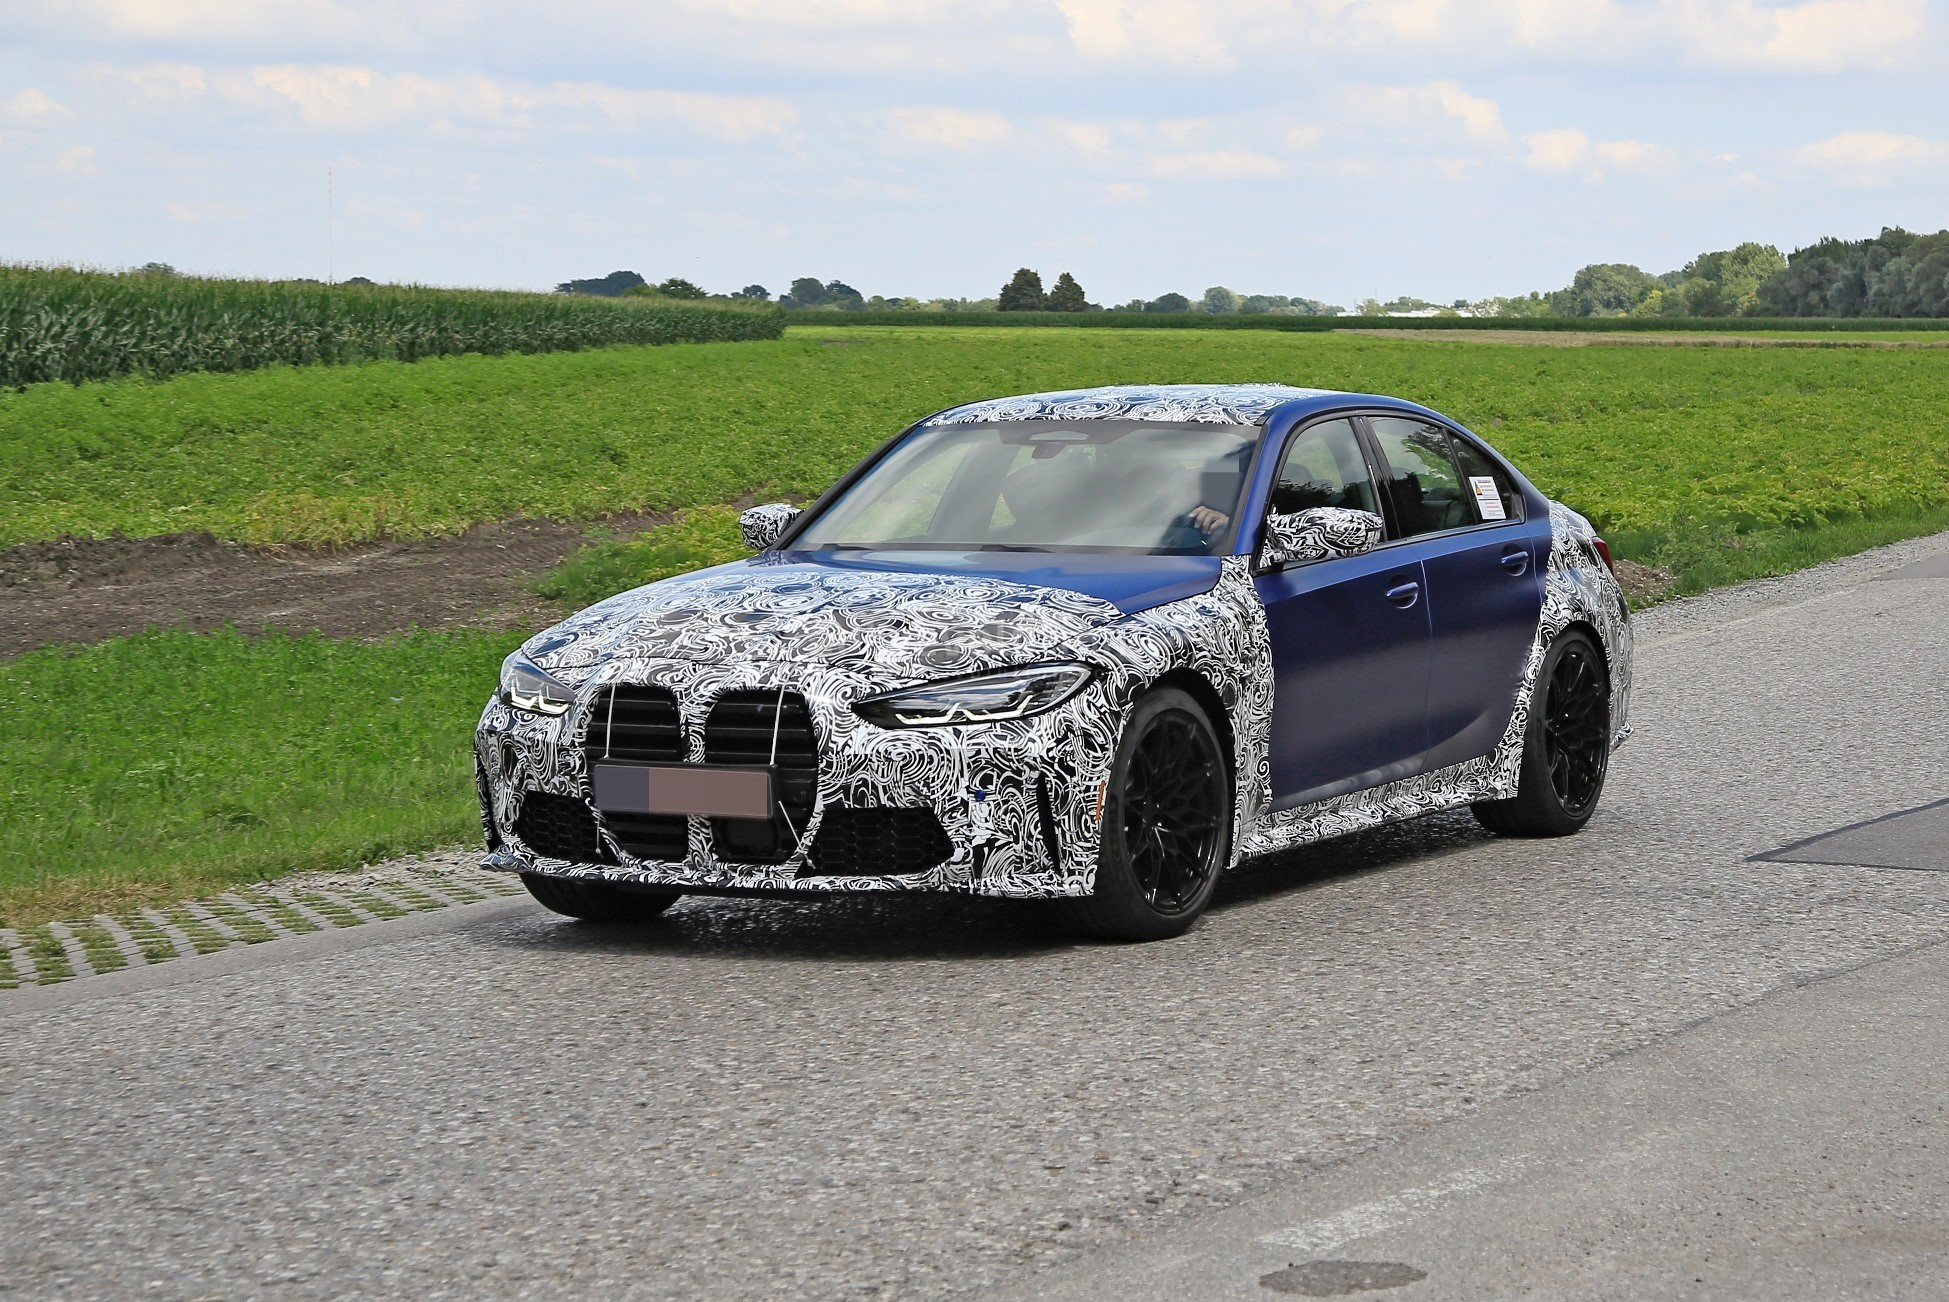 g80-bmw-m3-shows-ginormous-kidney-grille-in-new-spy-phots_2